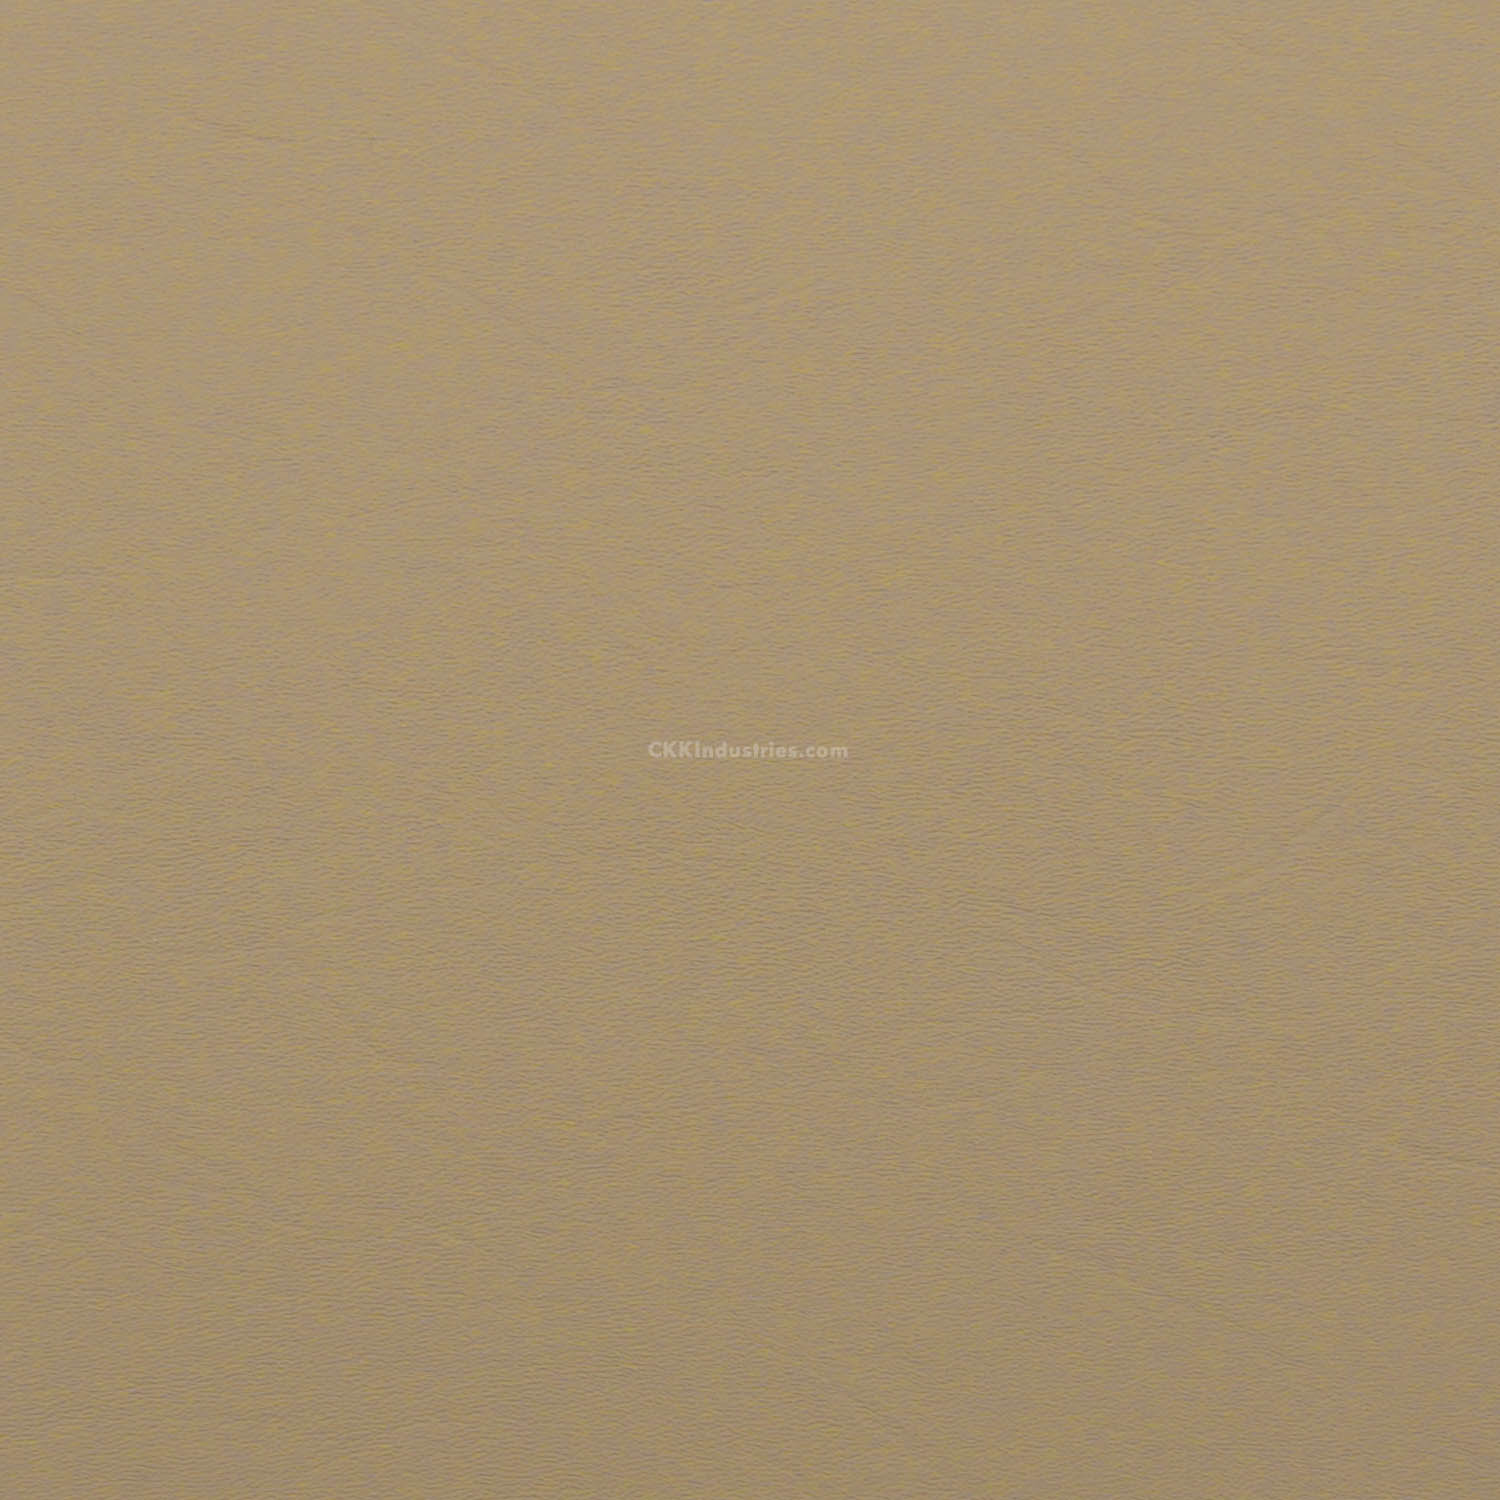 3 Pack HolsterSmith: KYDEX Sheet 12 x 12 Coyote Brown